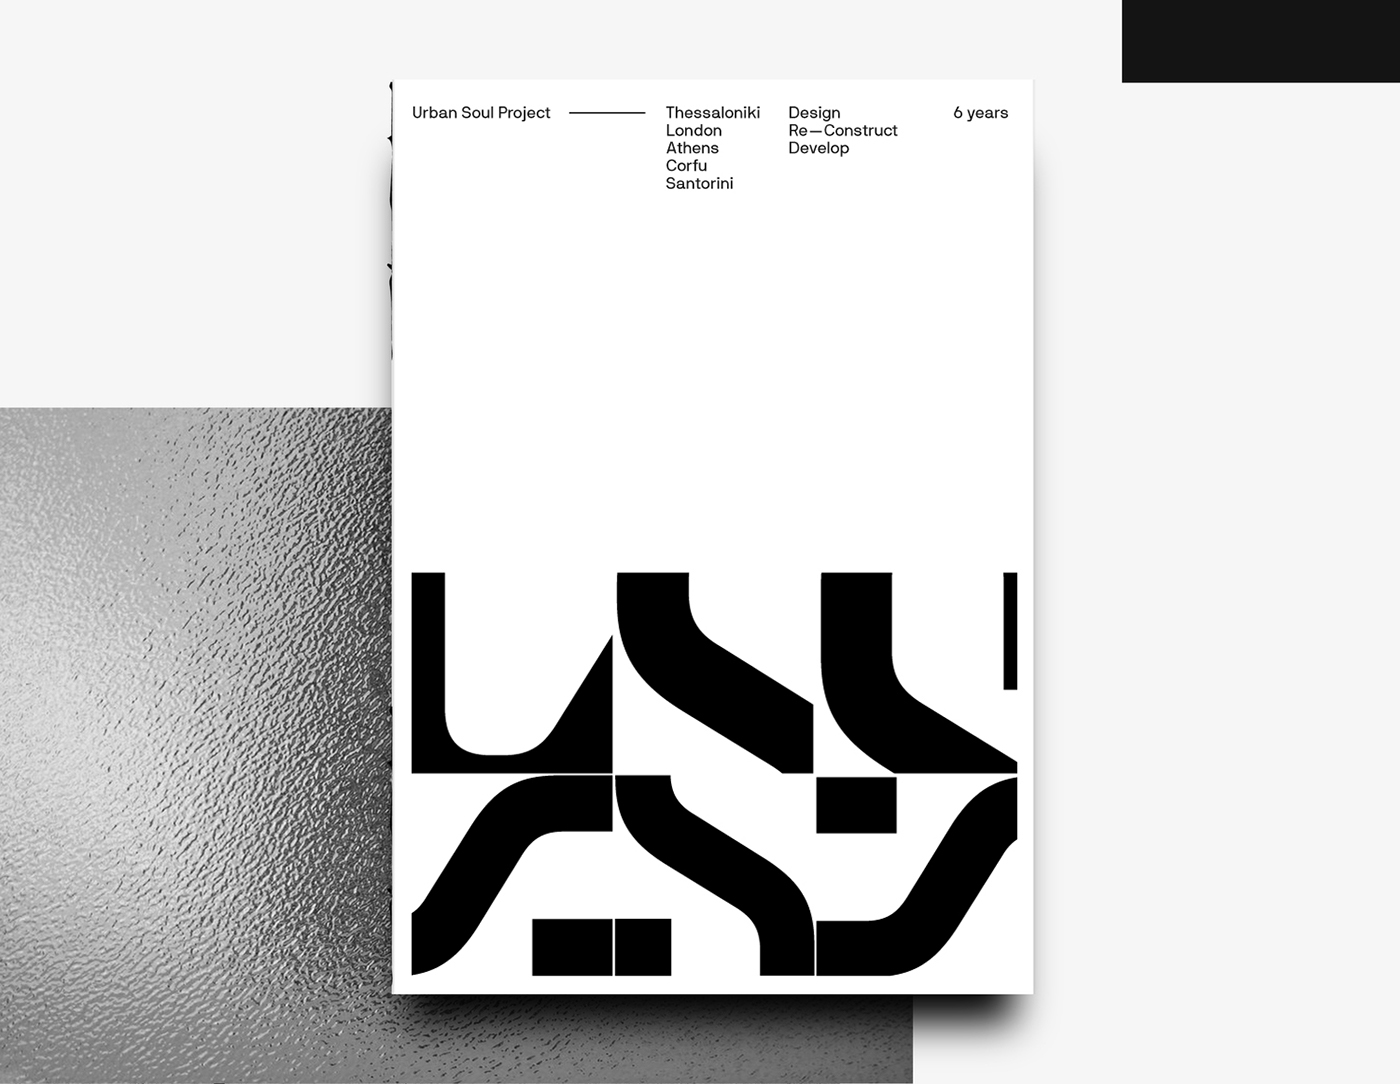 Form,avantgarde,black and white,Corporate Identity,visual system